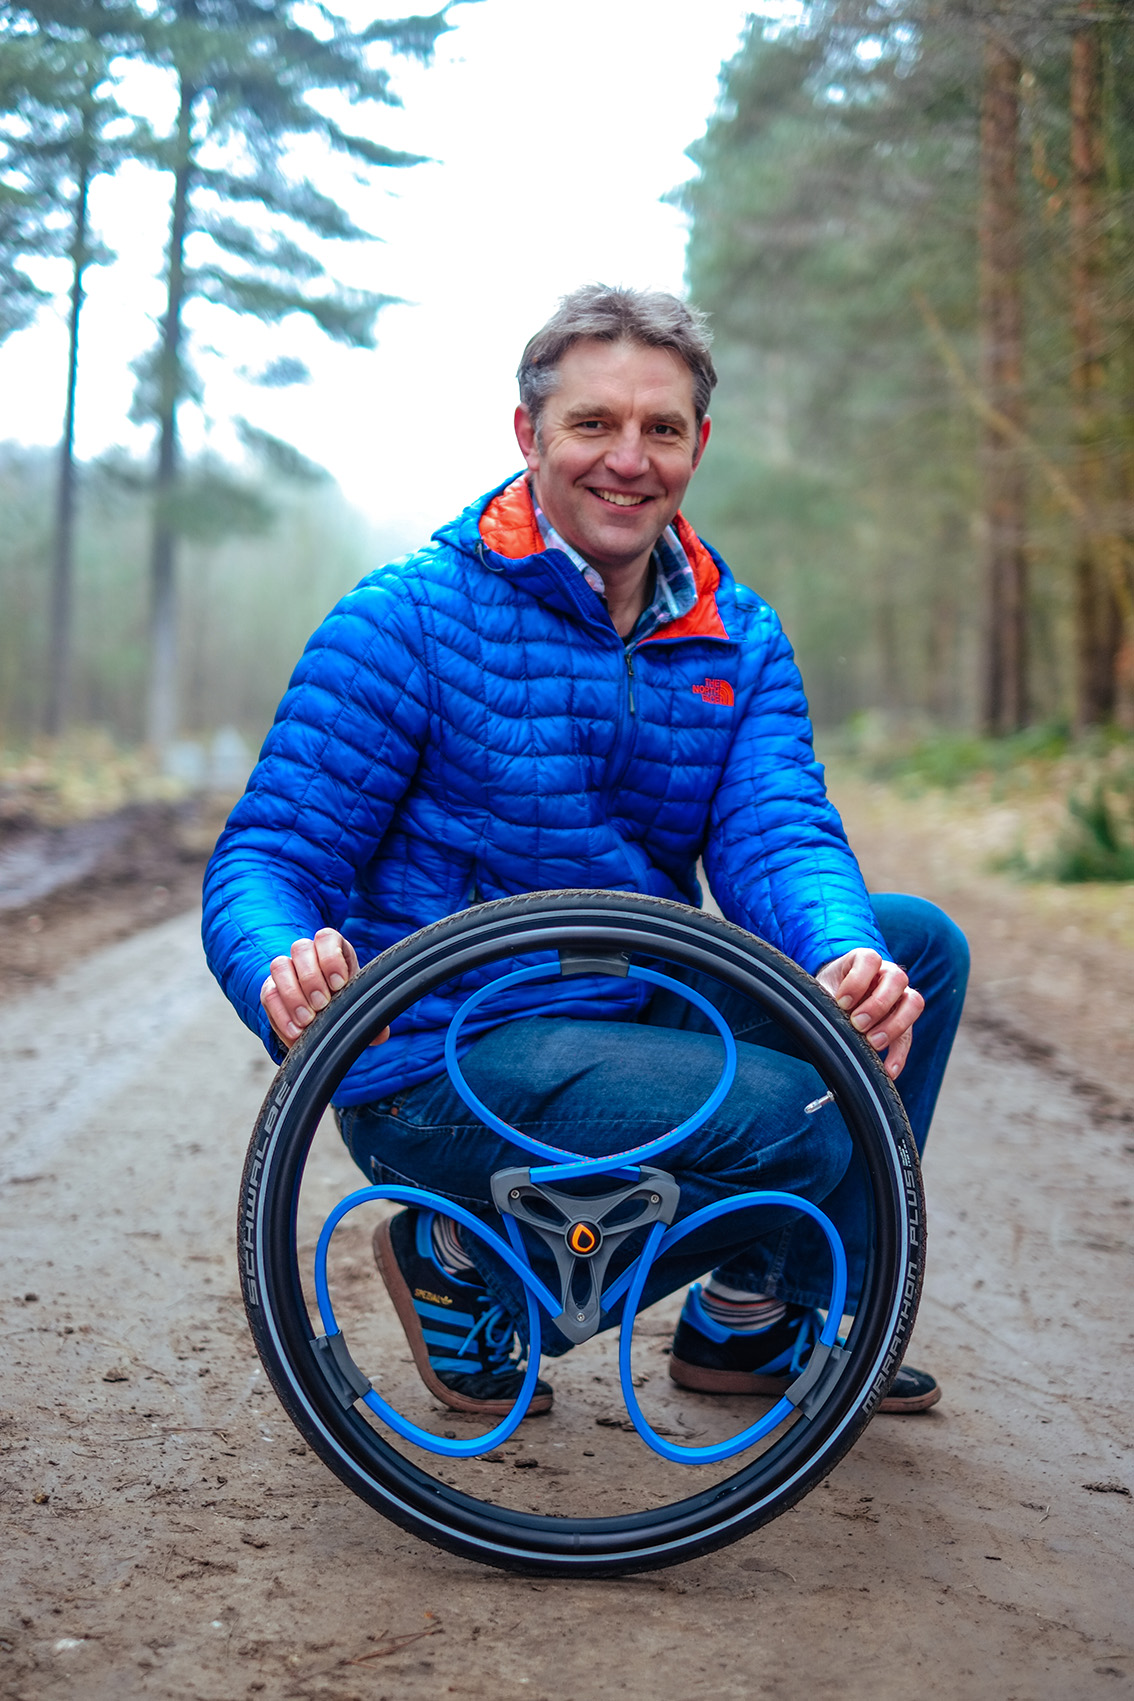 Loopwheels have reinvented the wheel for wheelchair users